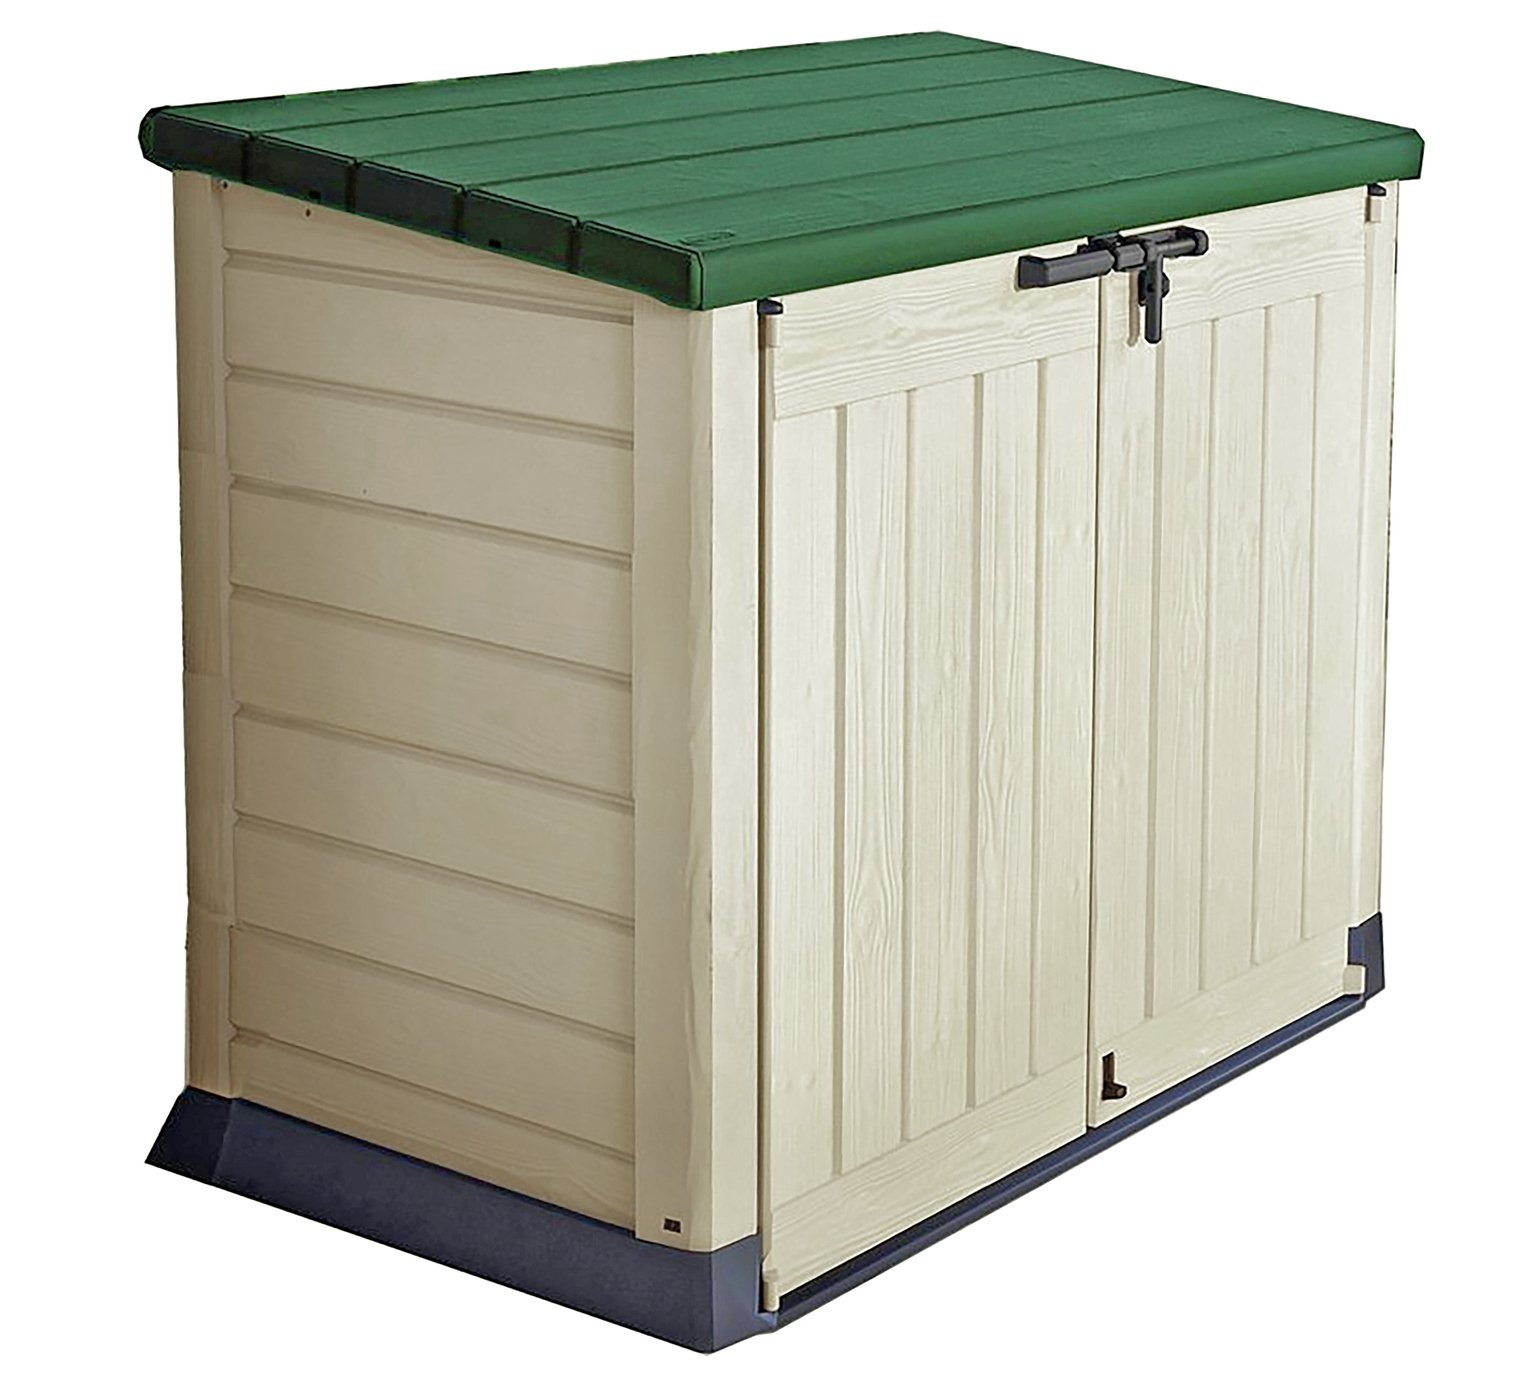 Keter Store It Out Max Garden Storage Box - Home Delivery  sc 1 st  Argos & Garden storage boxes | Argos